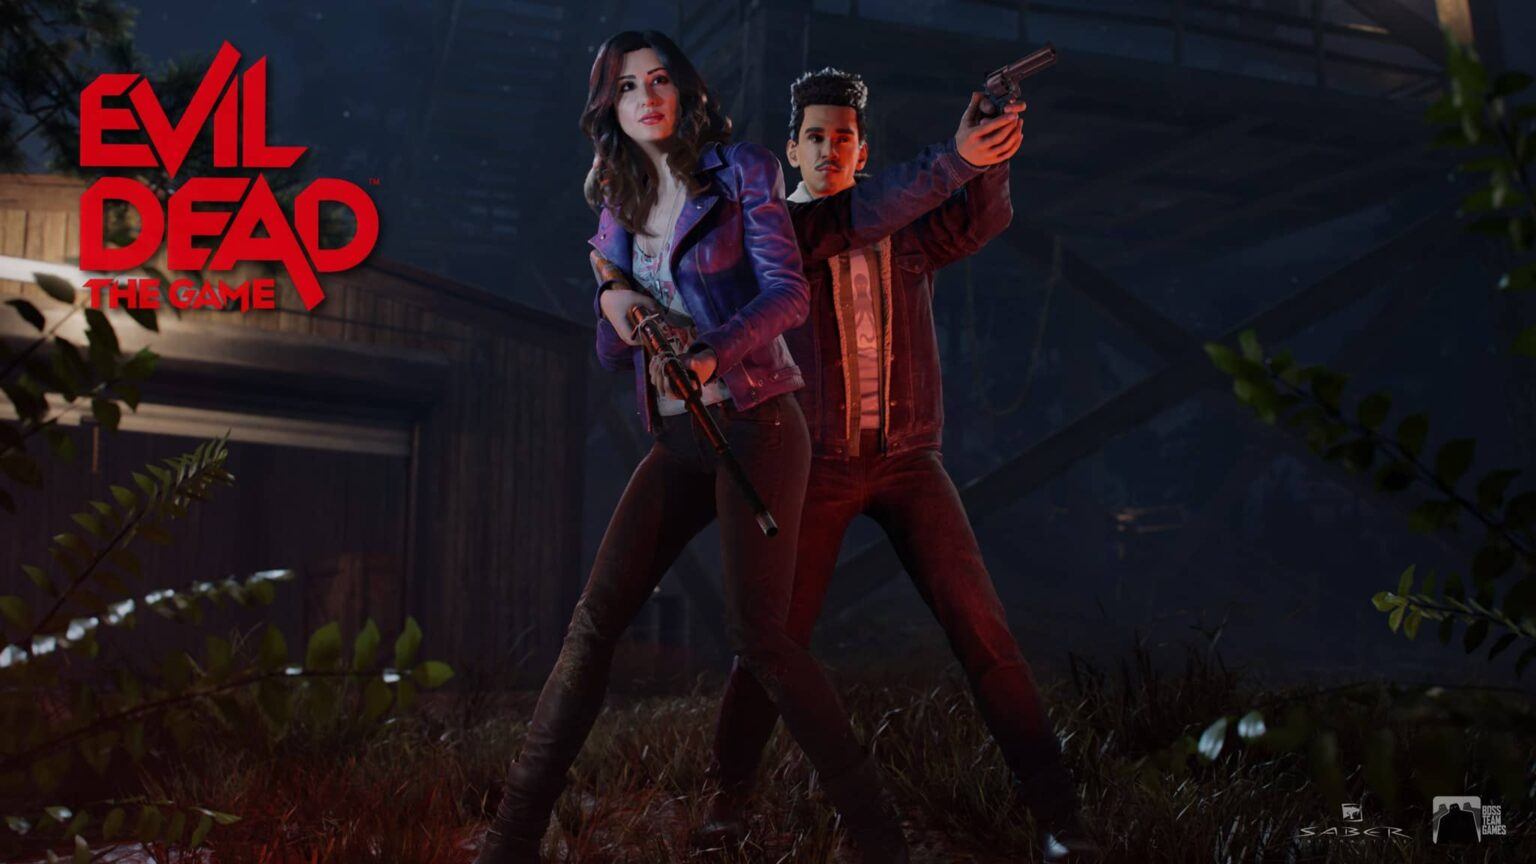 Evil Dead the game – Kelly Maxwell